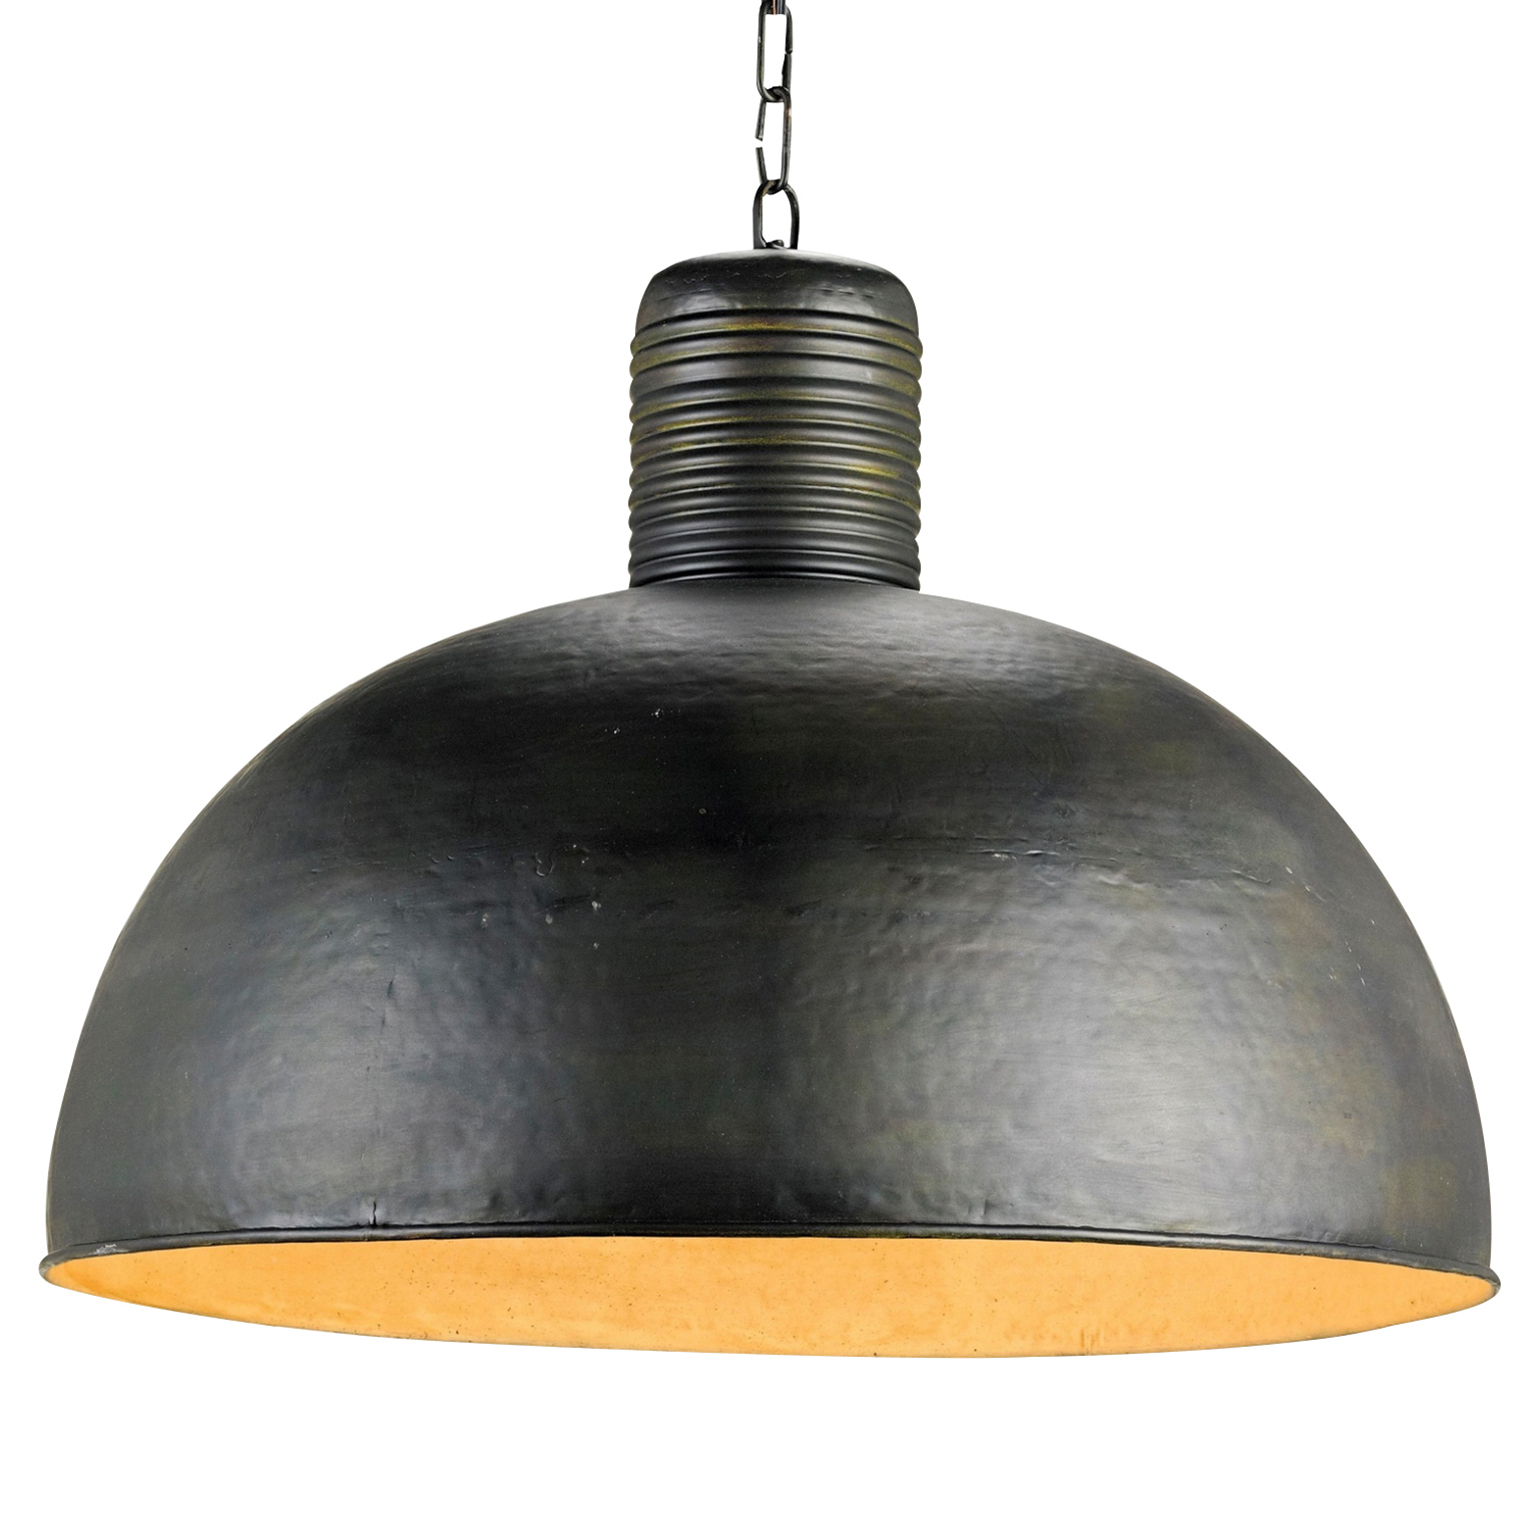 Bevin Industrial Loft Black Steel Dome Pendant